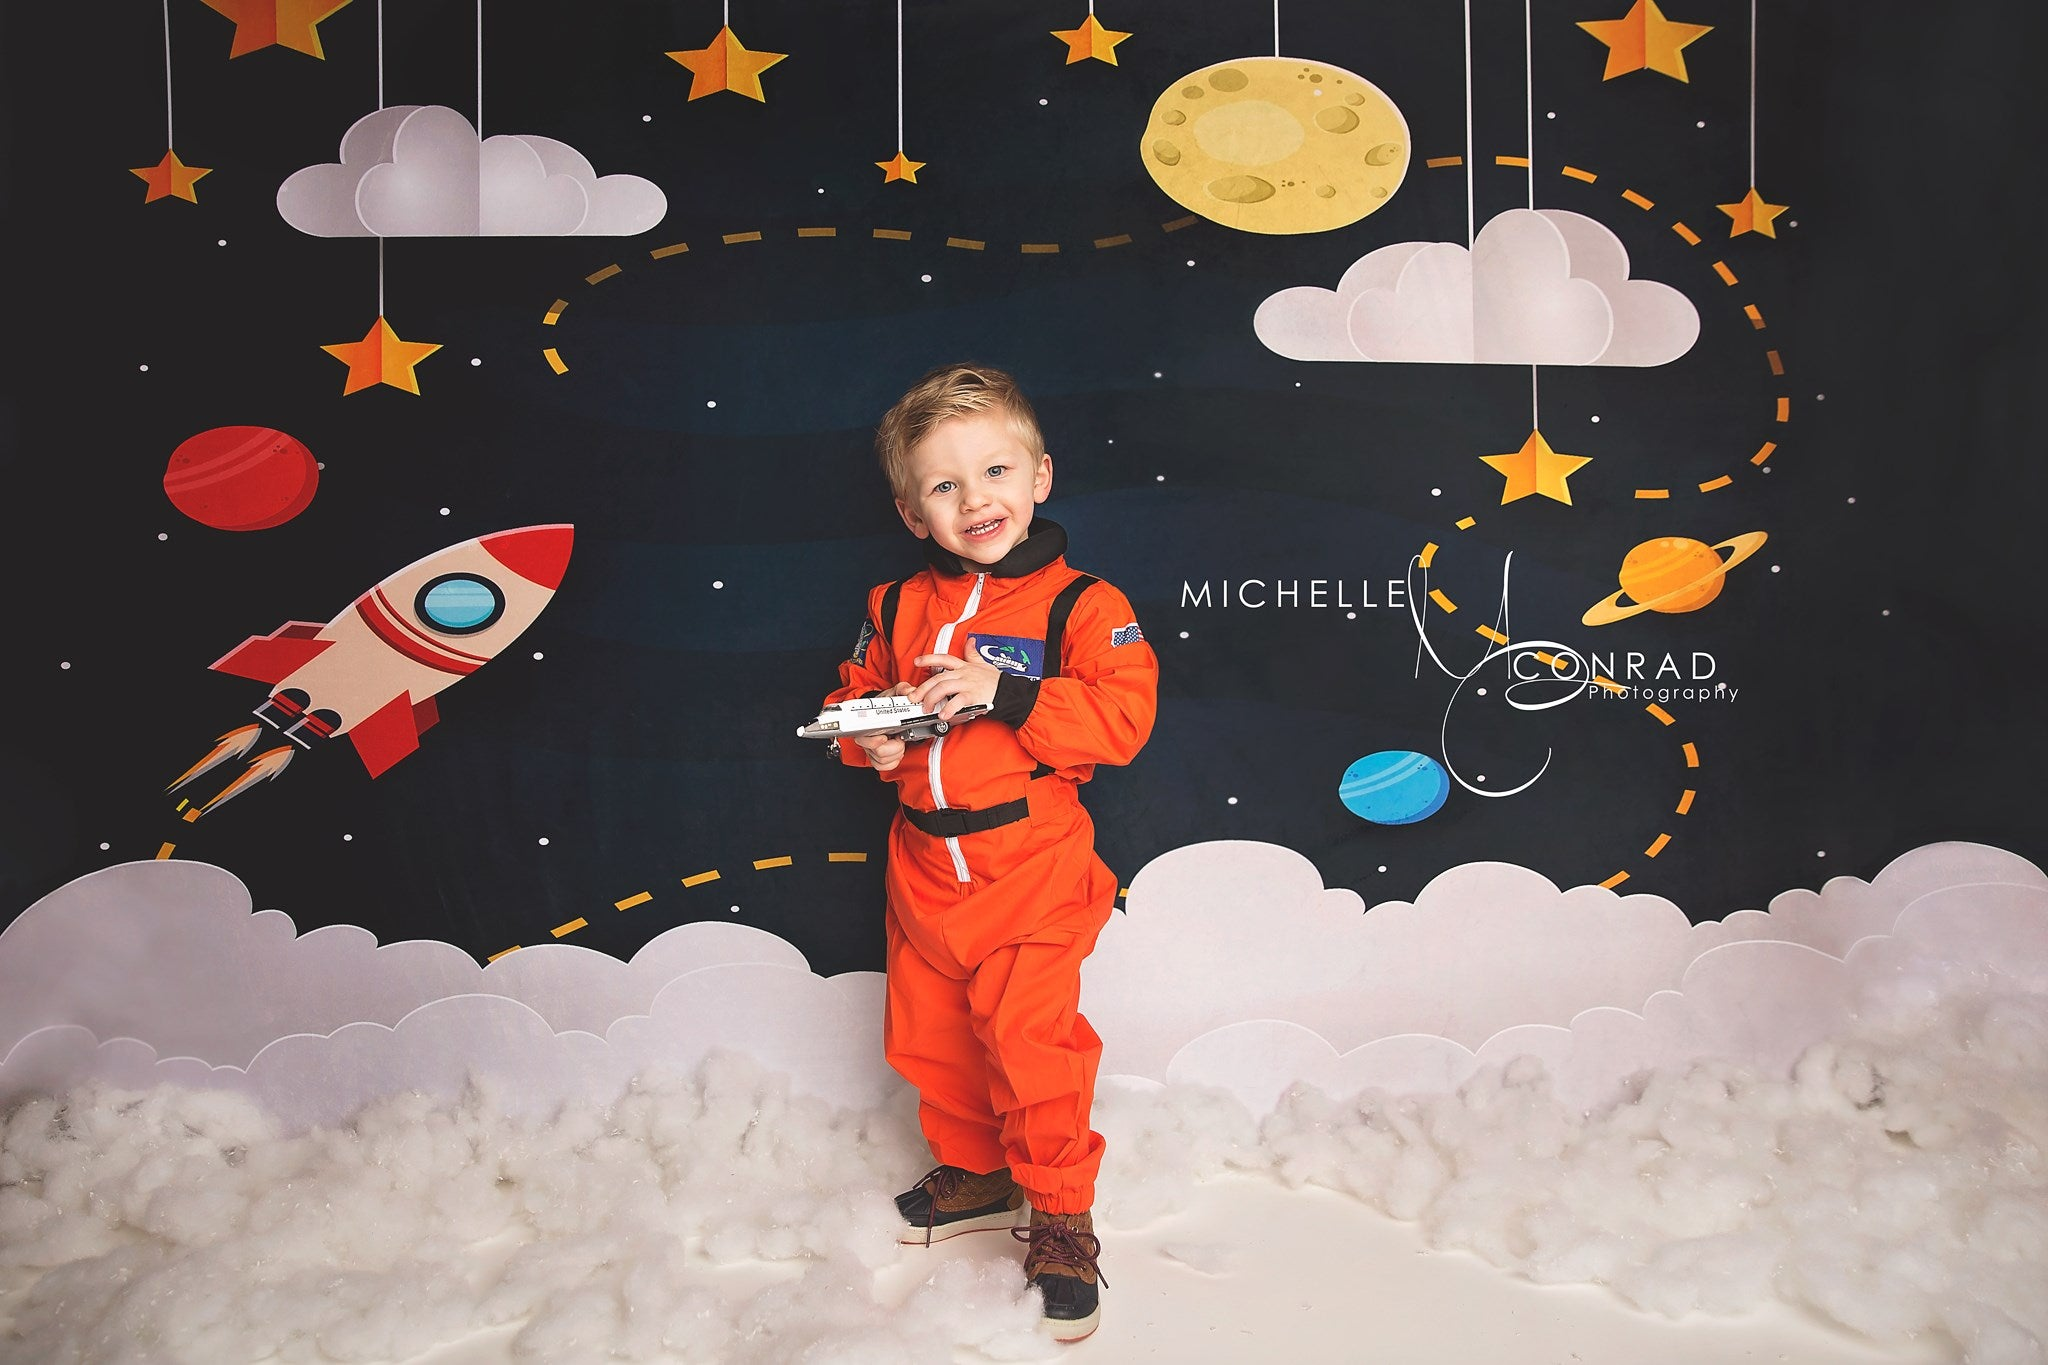 Load image into Gallery viewer, Kate Dark Blue Sky and Yellow Star Backdrop for Children Photography Designed by Amanda Moffatt